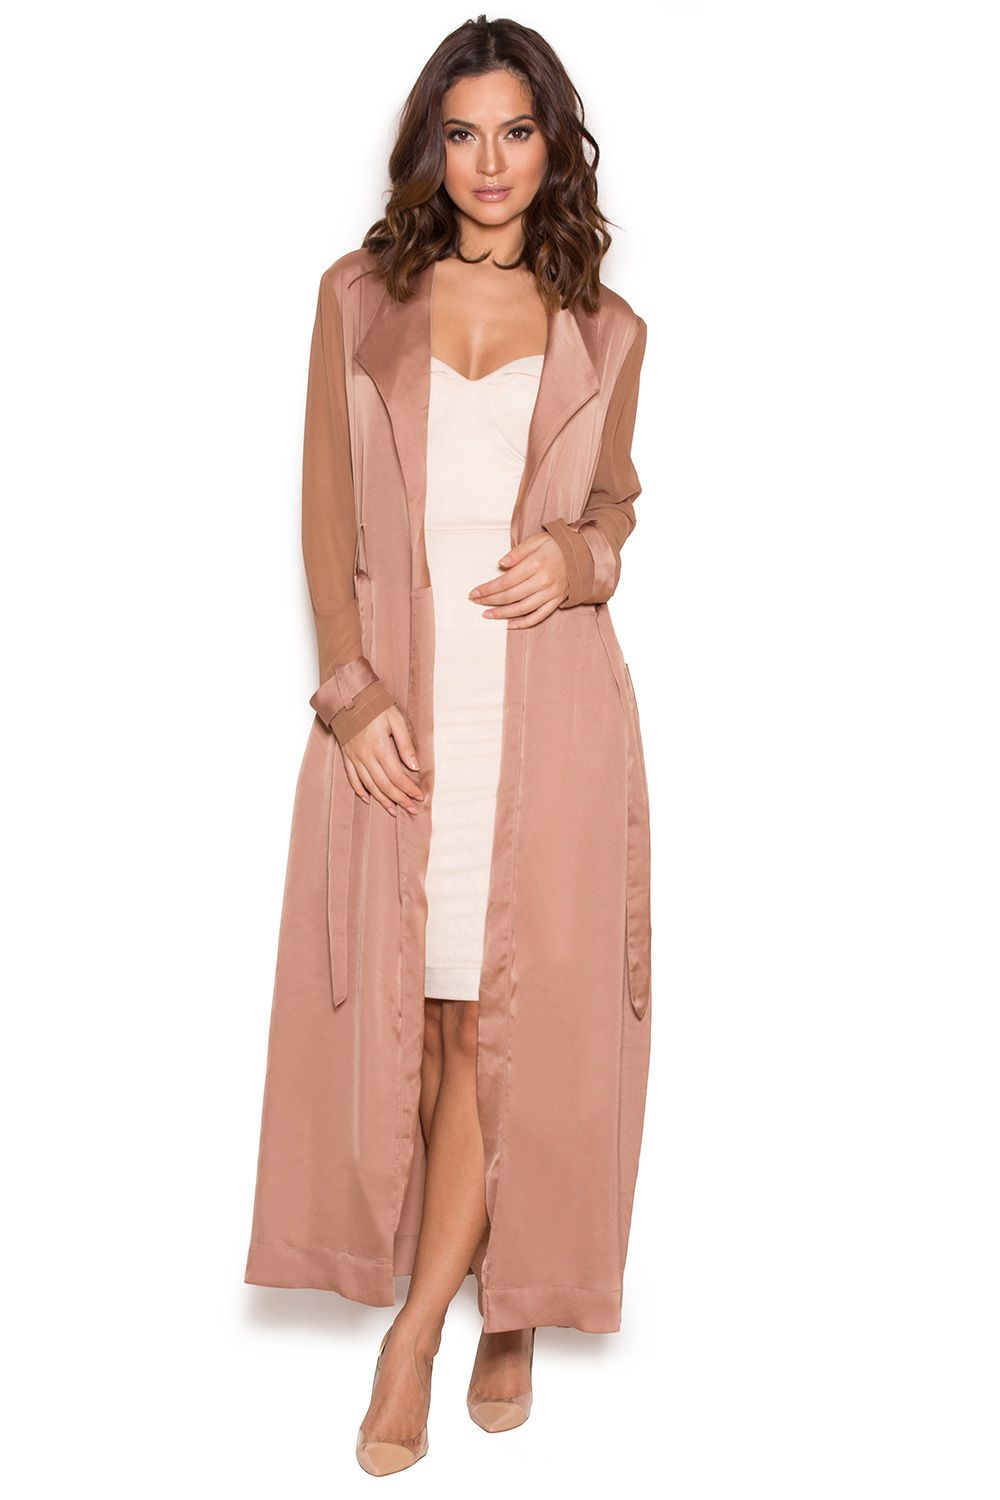 8474215207 Clothing   Jackets    Coryn  Rose Gold Silky Duster Coat